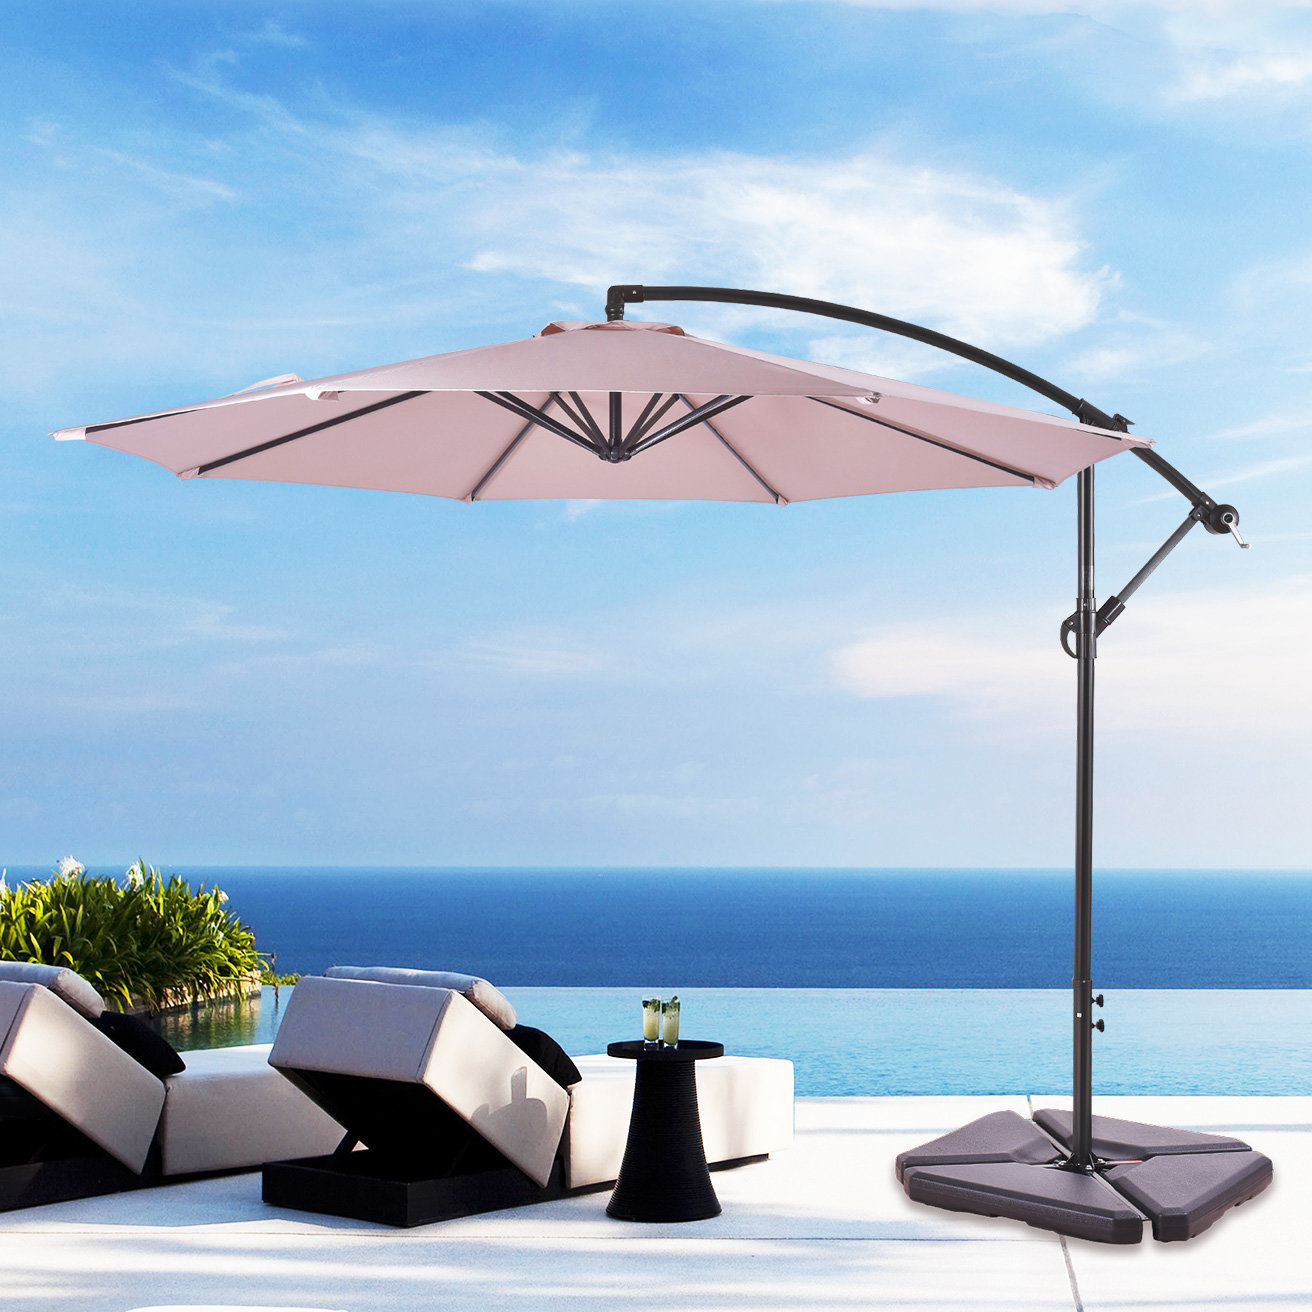 Widely Used Karr 10' Cantilever Umbrella Throughout Booneville Cantilever Umbrellas (View 6 of 20)